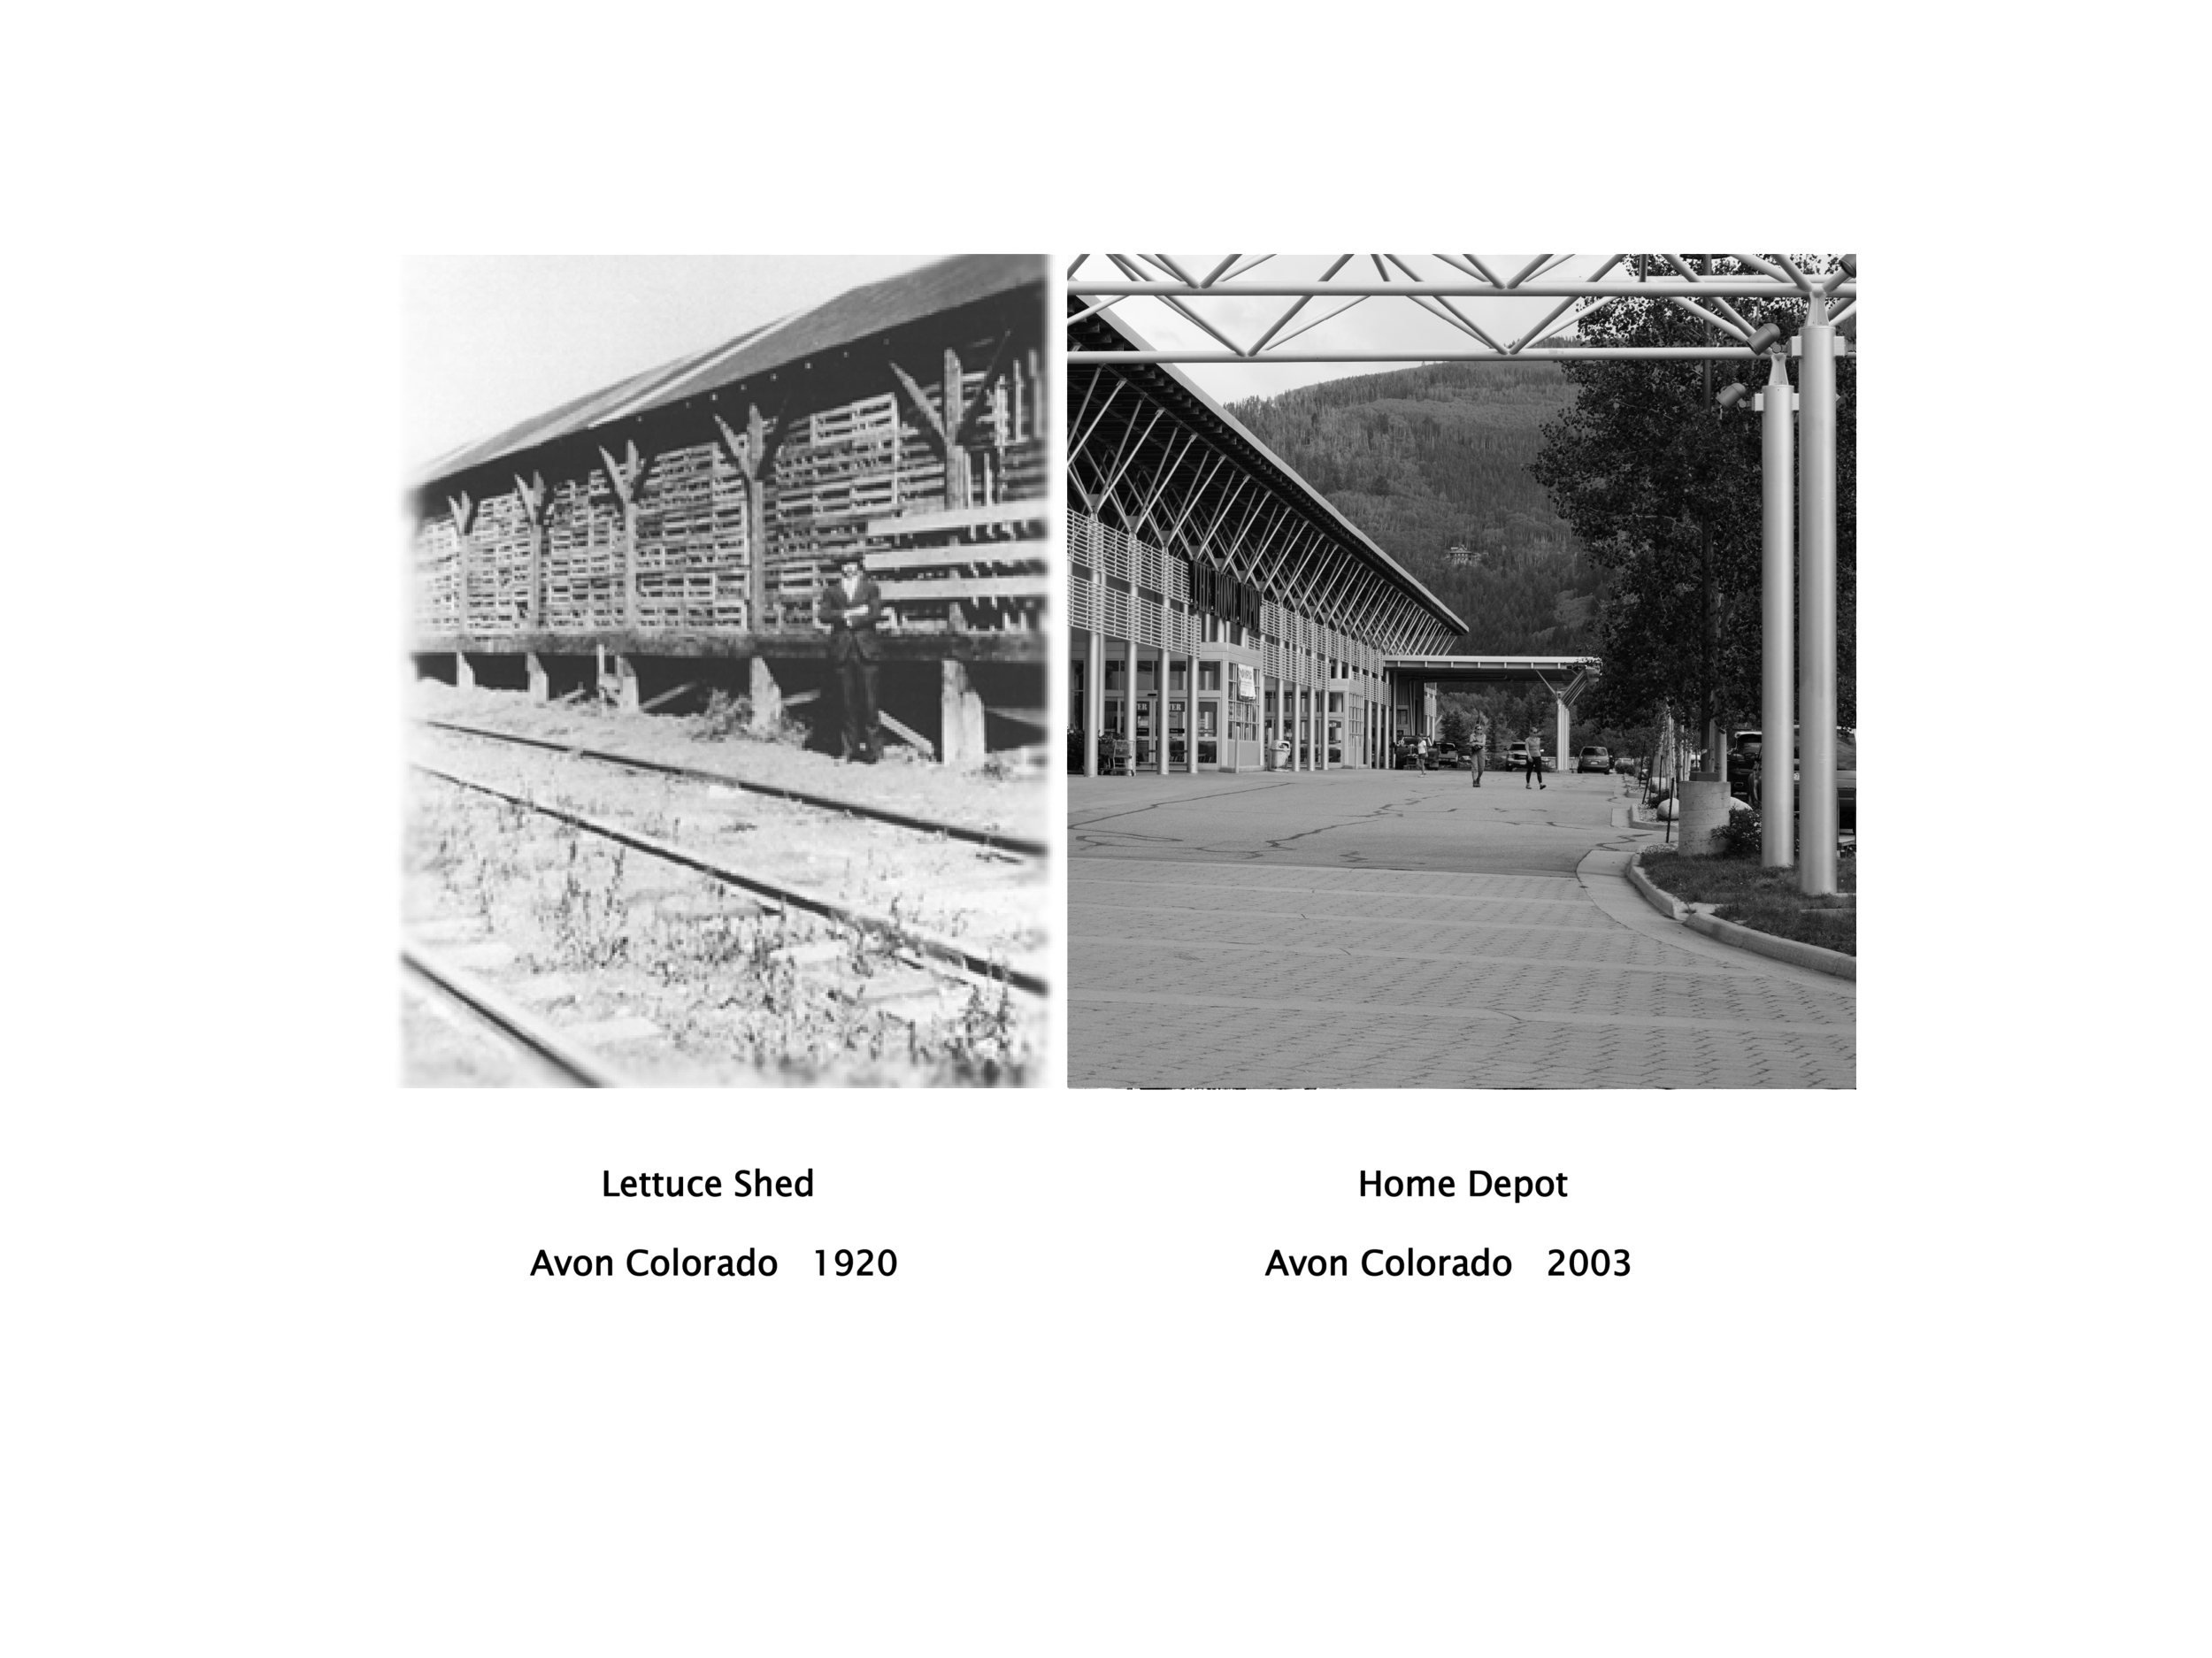 Arthur Erickson drew inspiration from the old Avon lettuce sheds when designing the colonnade canopies in front of Walmart and Home Depot.